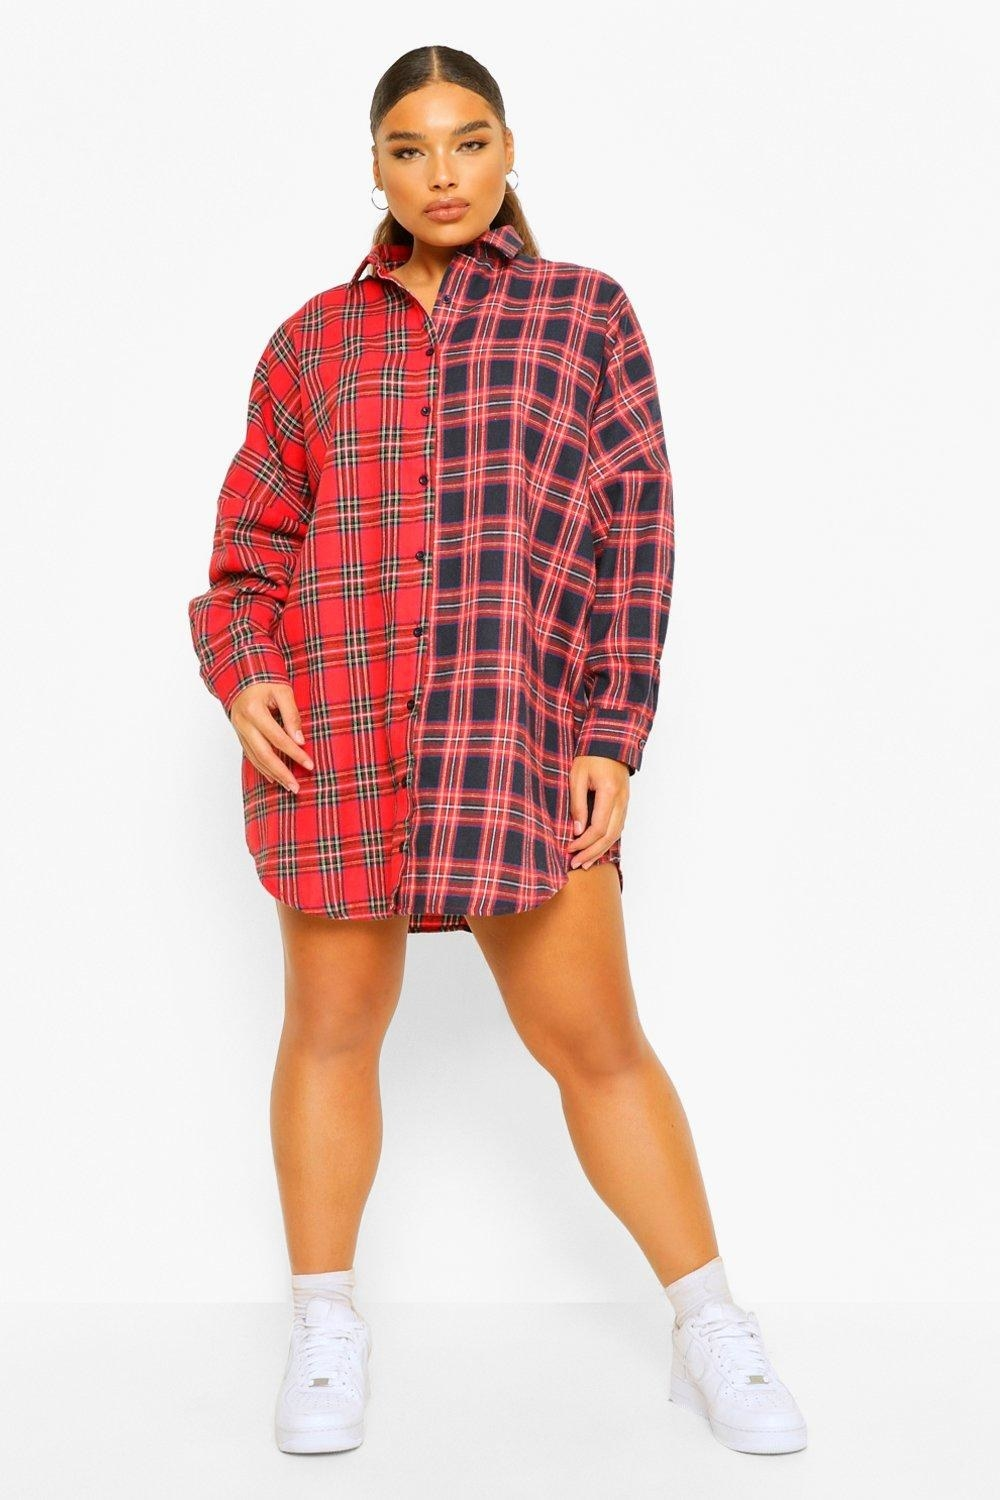 Model wears red, pink, and black check button-front dress with white sneakers